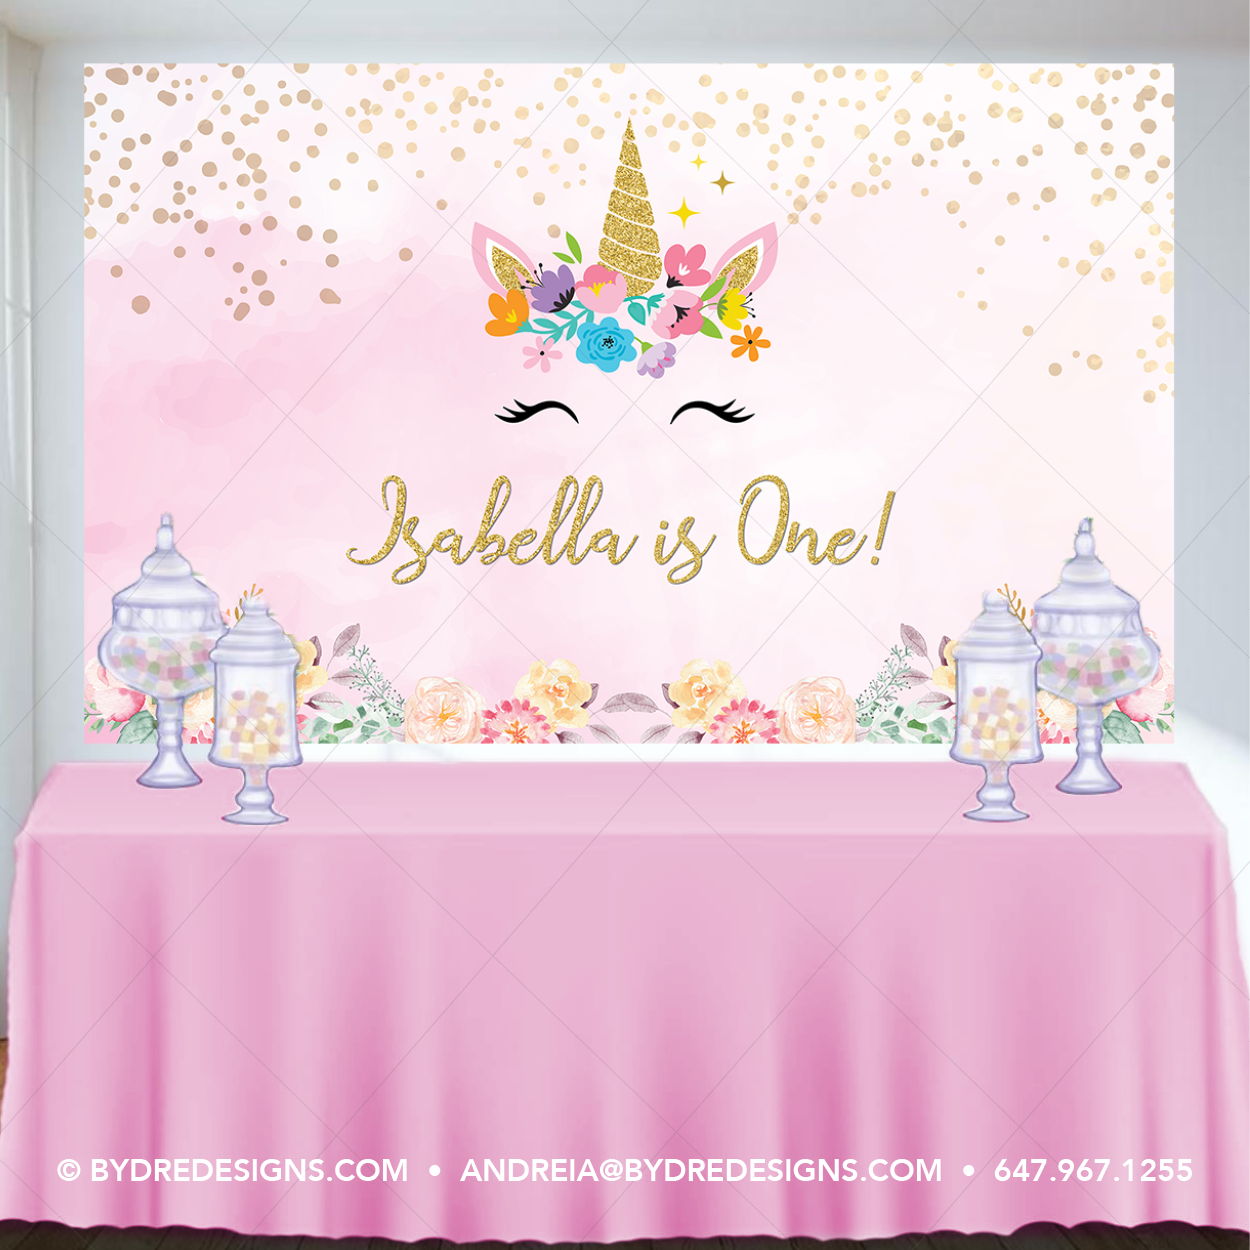 AOSTO 7x5ft Unicorn Backdrop for Baby Shower or Birthday Table Decoration Pink Unicorn Background Vinyl Material W-3391